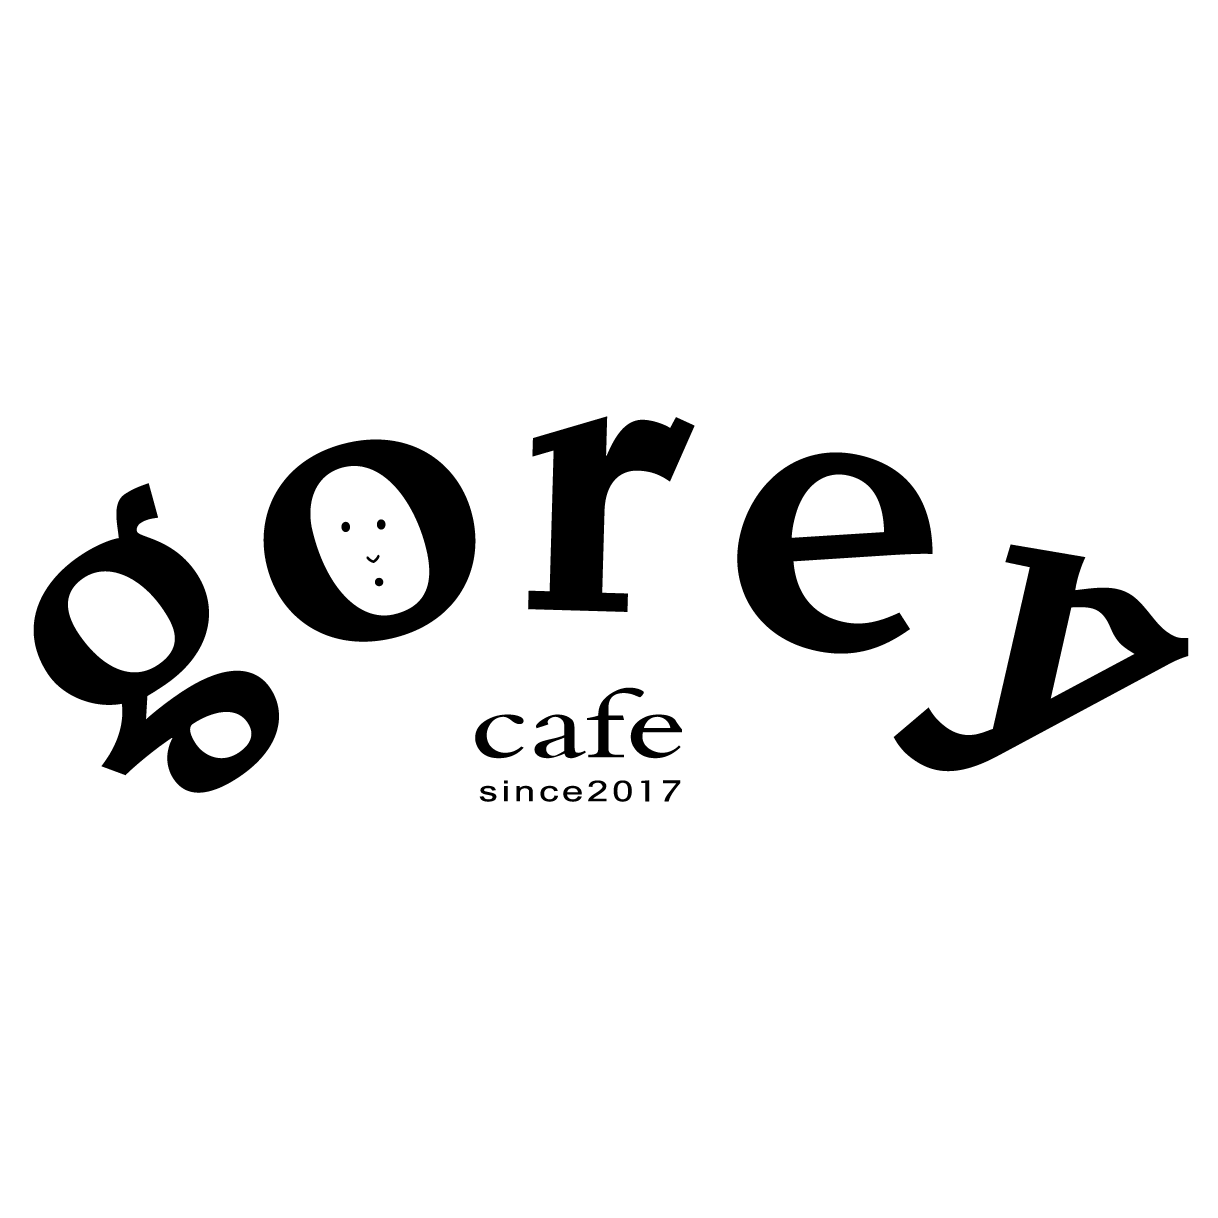 Website: goret cafe